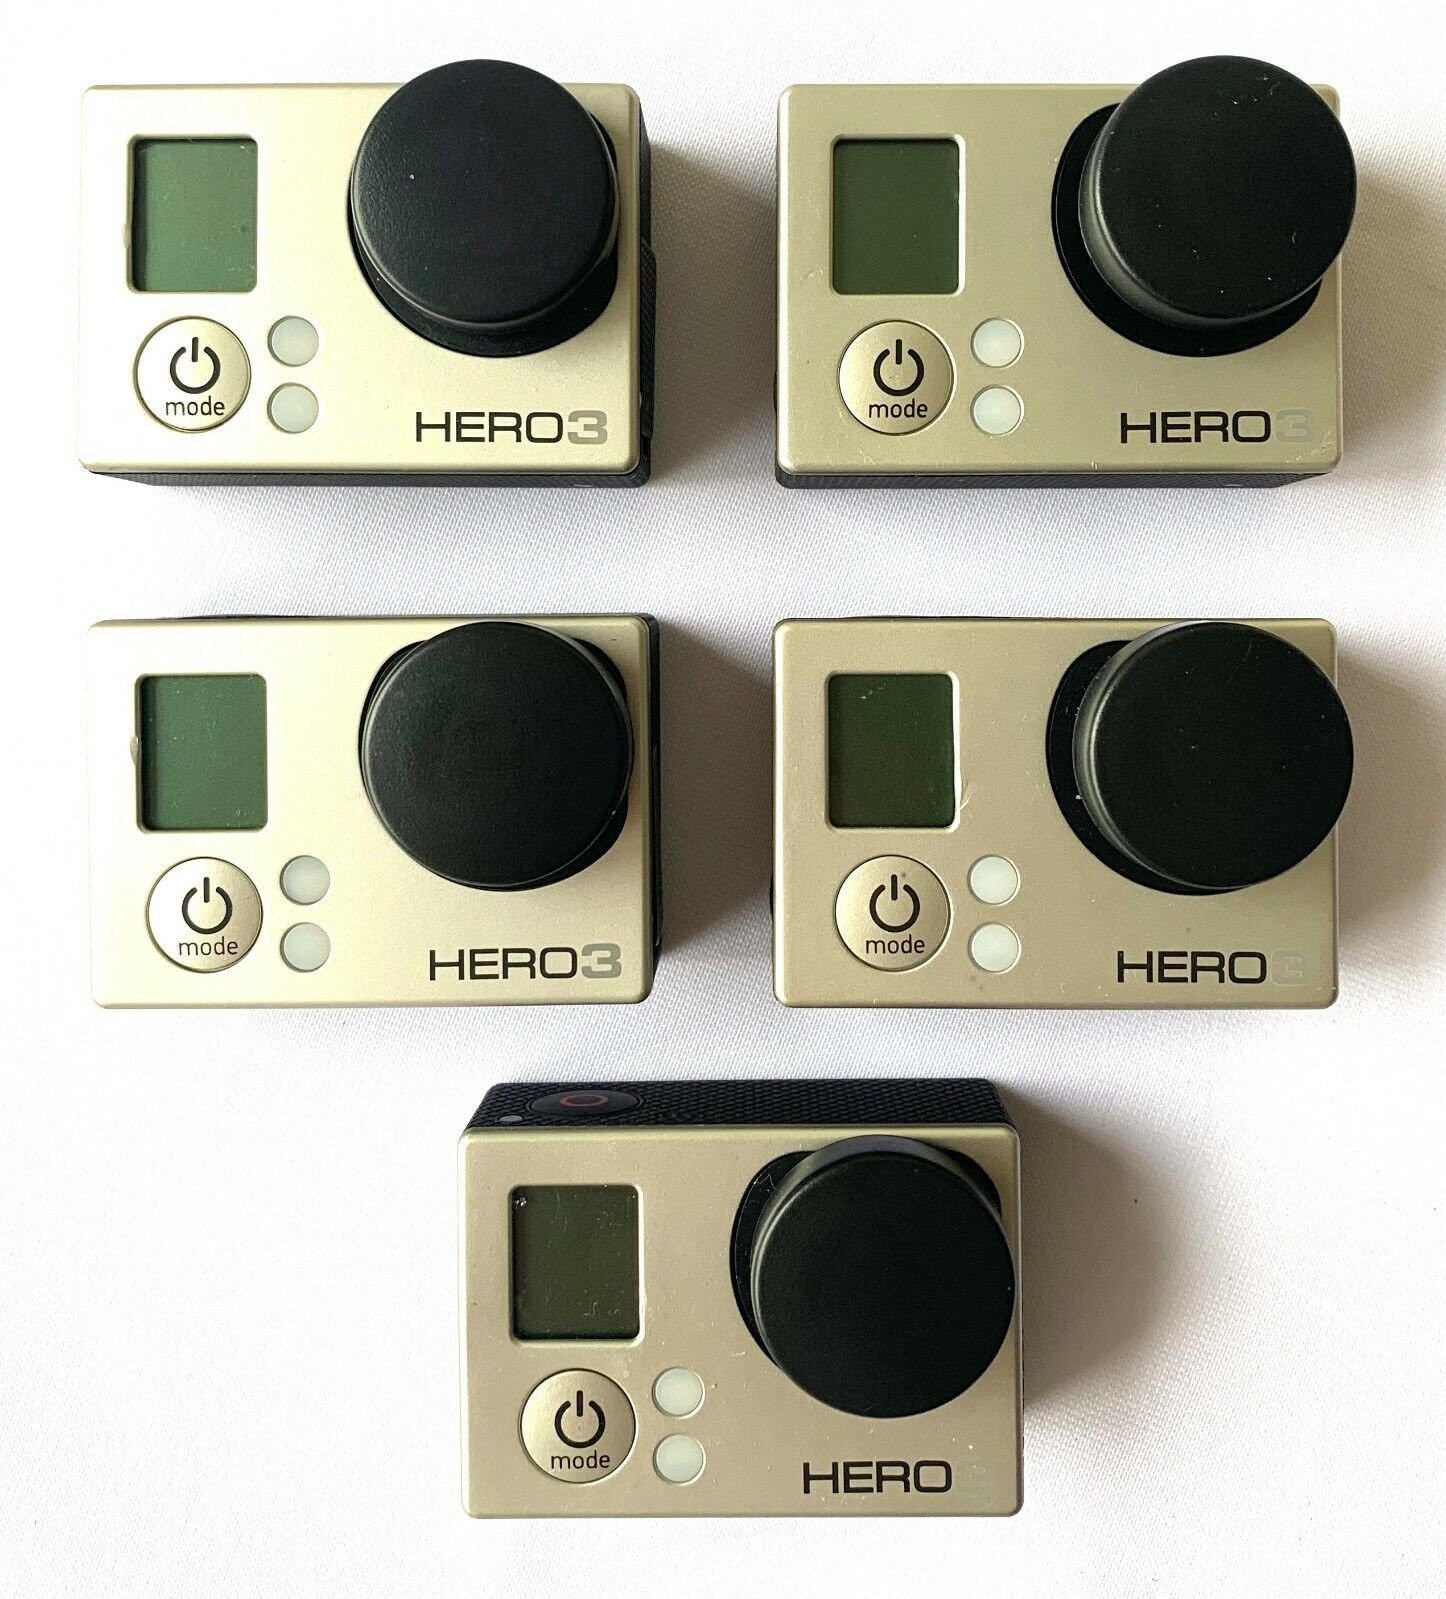 Bulk sale - Gopro Hero 3 Silver Edition Camera-Reseller 5 pack